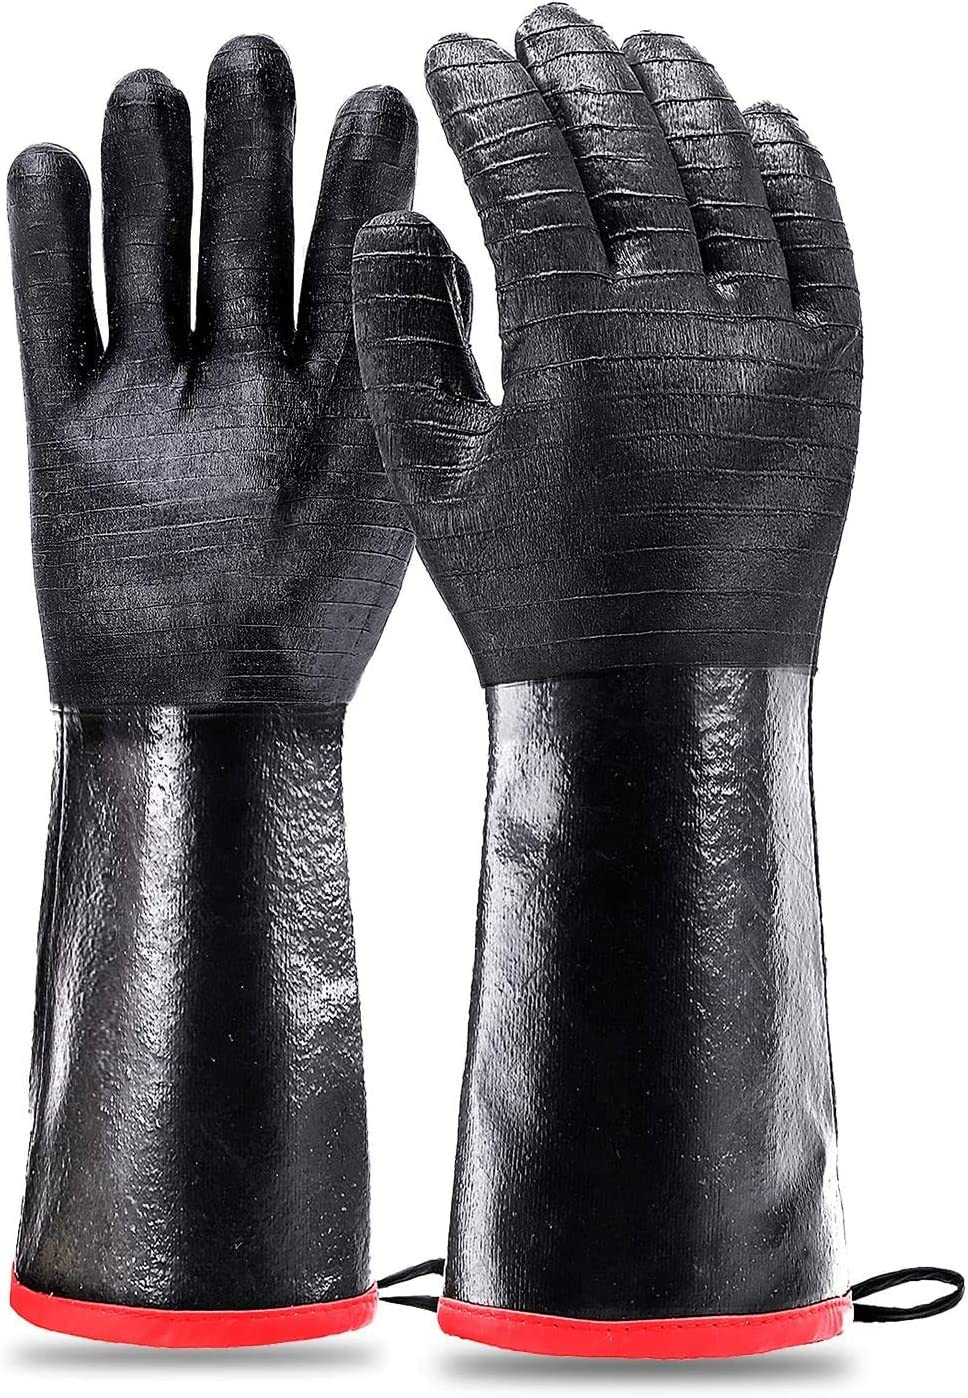 Heat Resistant-Smoker BBQ Gloves 17 Inches,932℉, Grill, Cooking Barbecue Gloves, to Handling Heat Food Right on Your Fryer,Grill,Oven. Waterproof, Fireproof, Oil Resistant Neoprene Coating(17 inch)